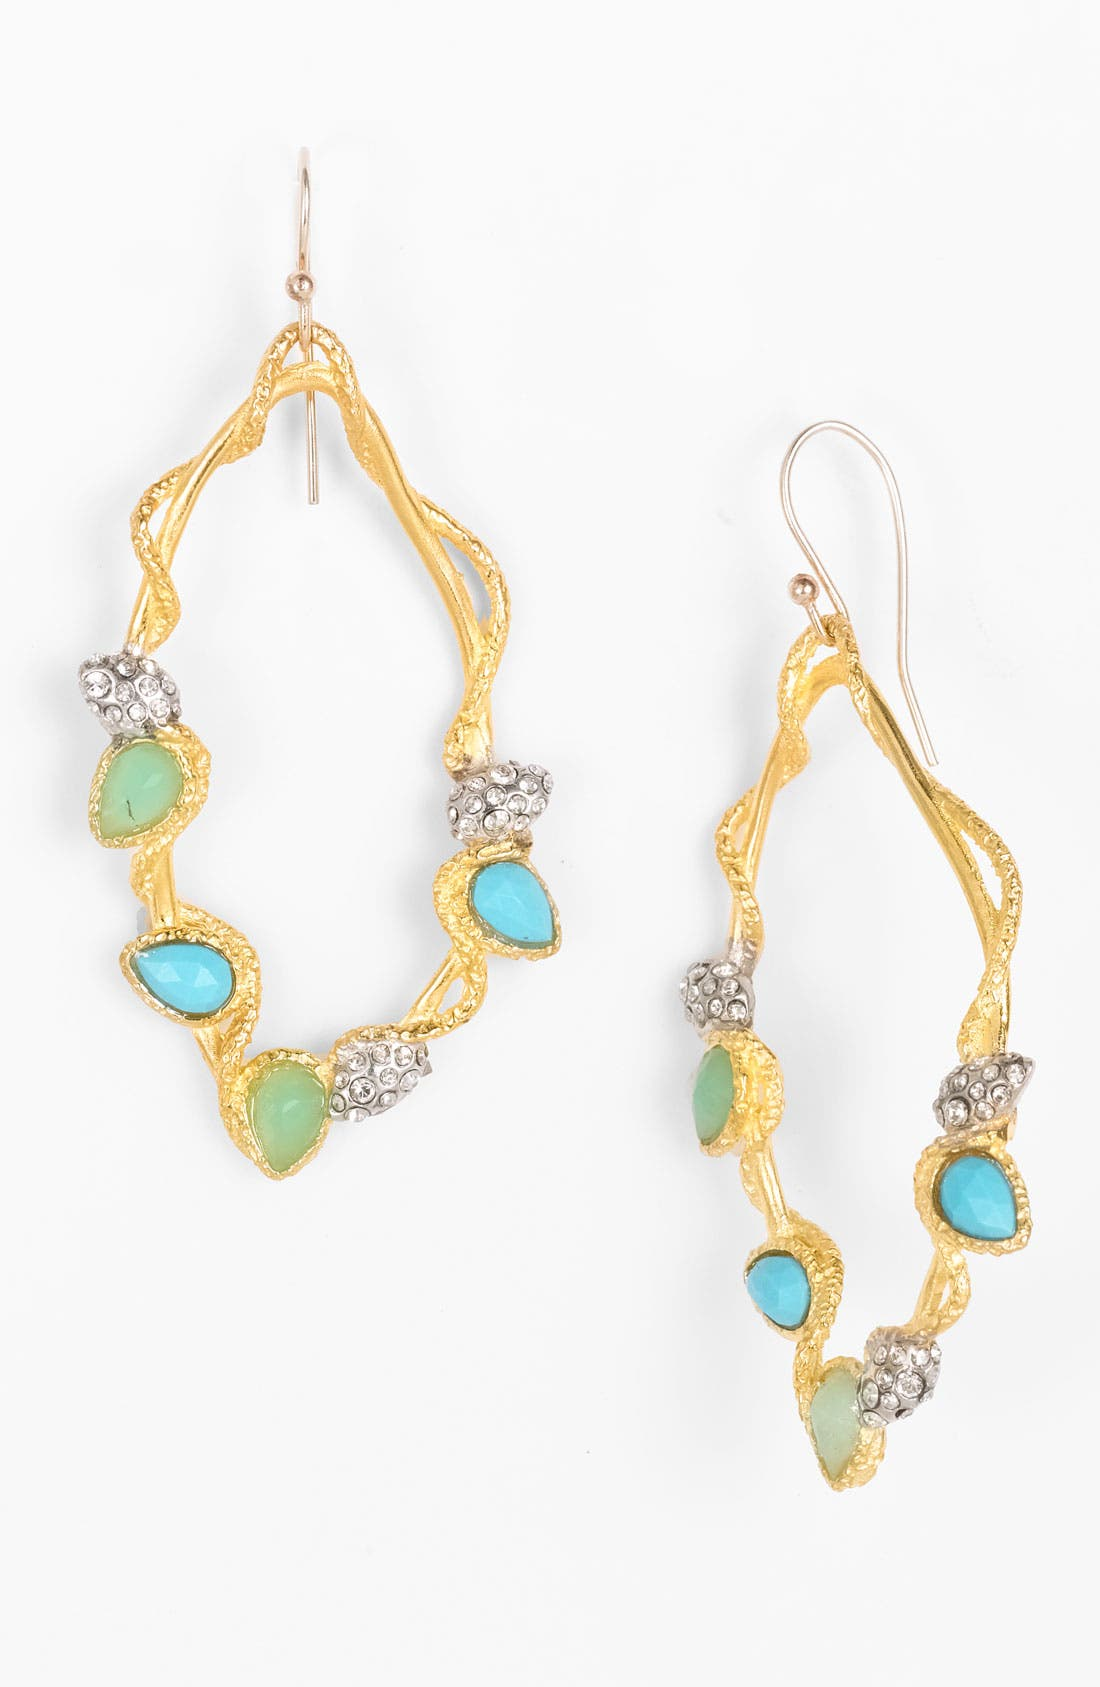 Alternate Image 1 Selected - Alexis Bittar 'Elements' Pavé Vine Teardrop Earrings (Nordstrom Exclusive)